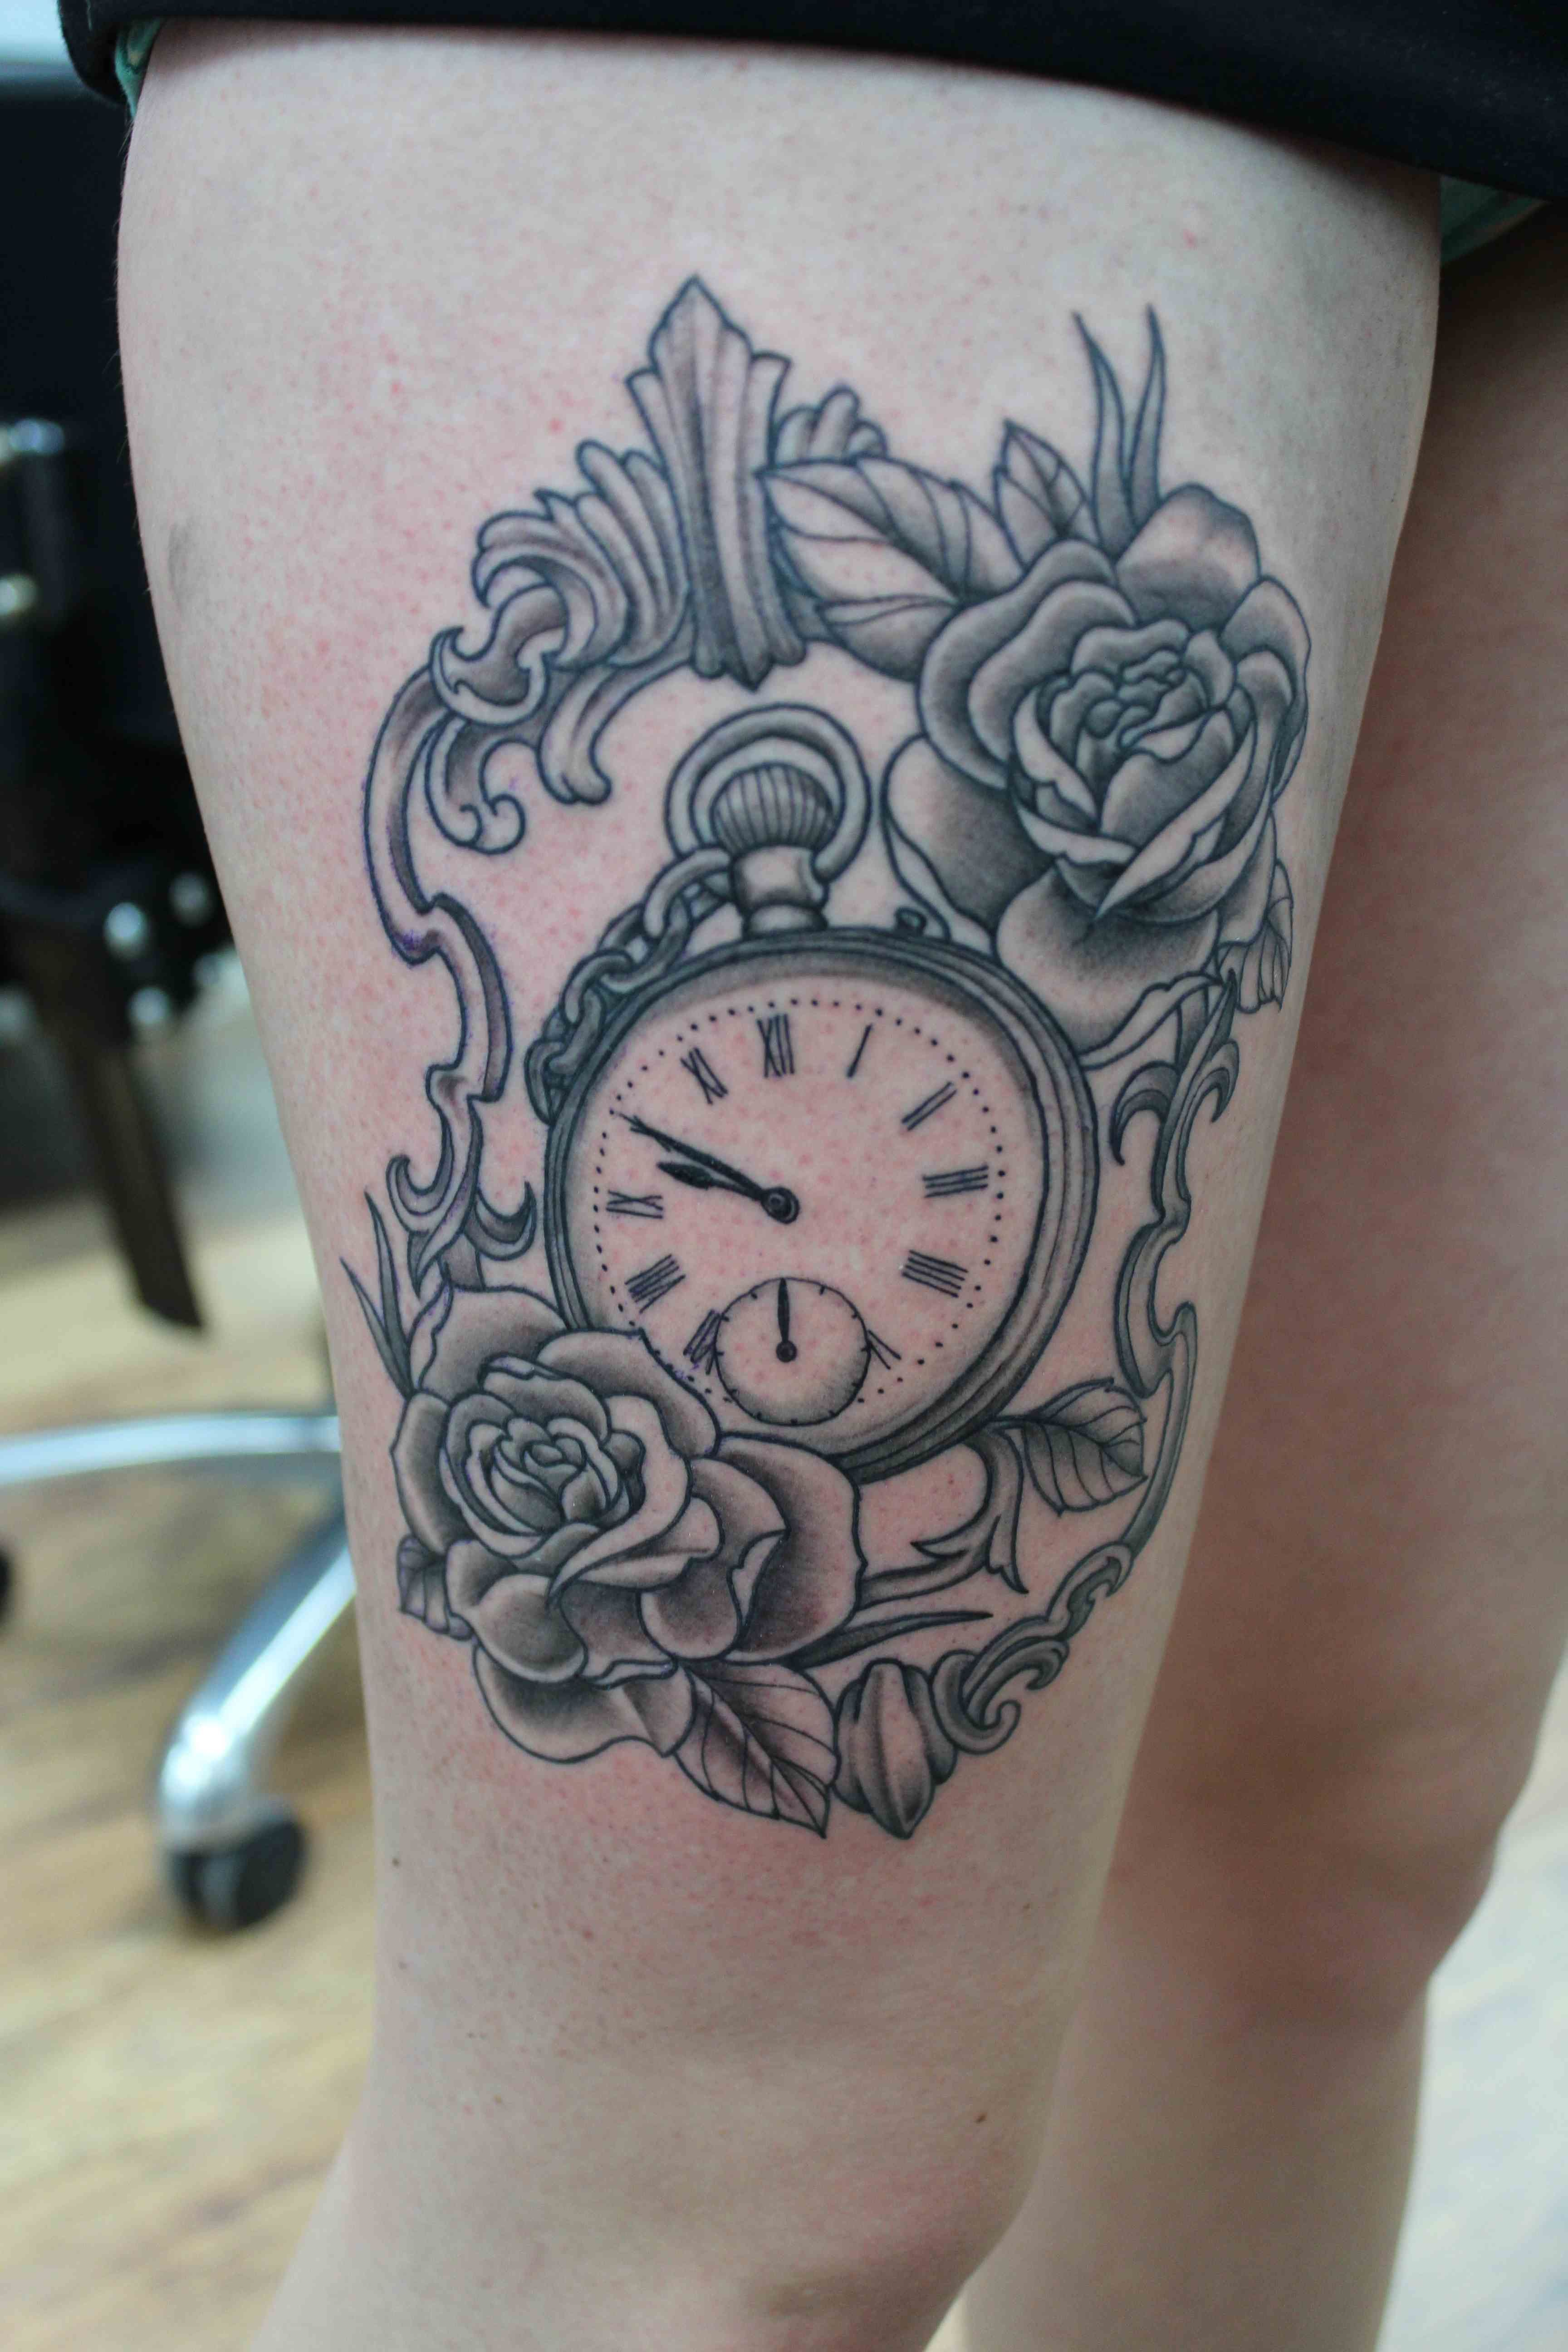 Broken Pocket Watch Tattoo Design Broken Pocket Watch Ta...